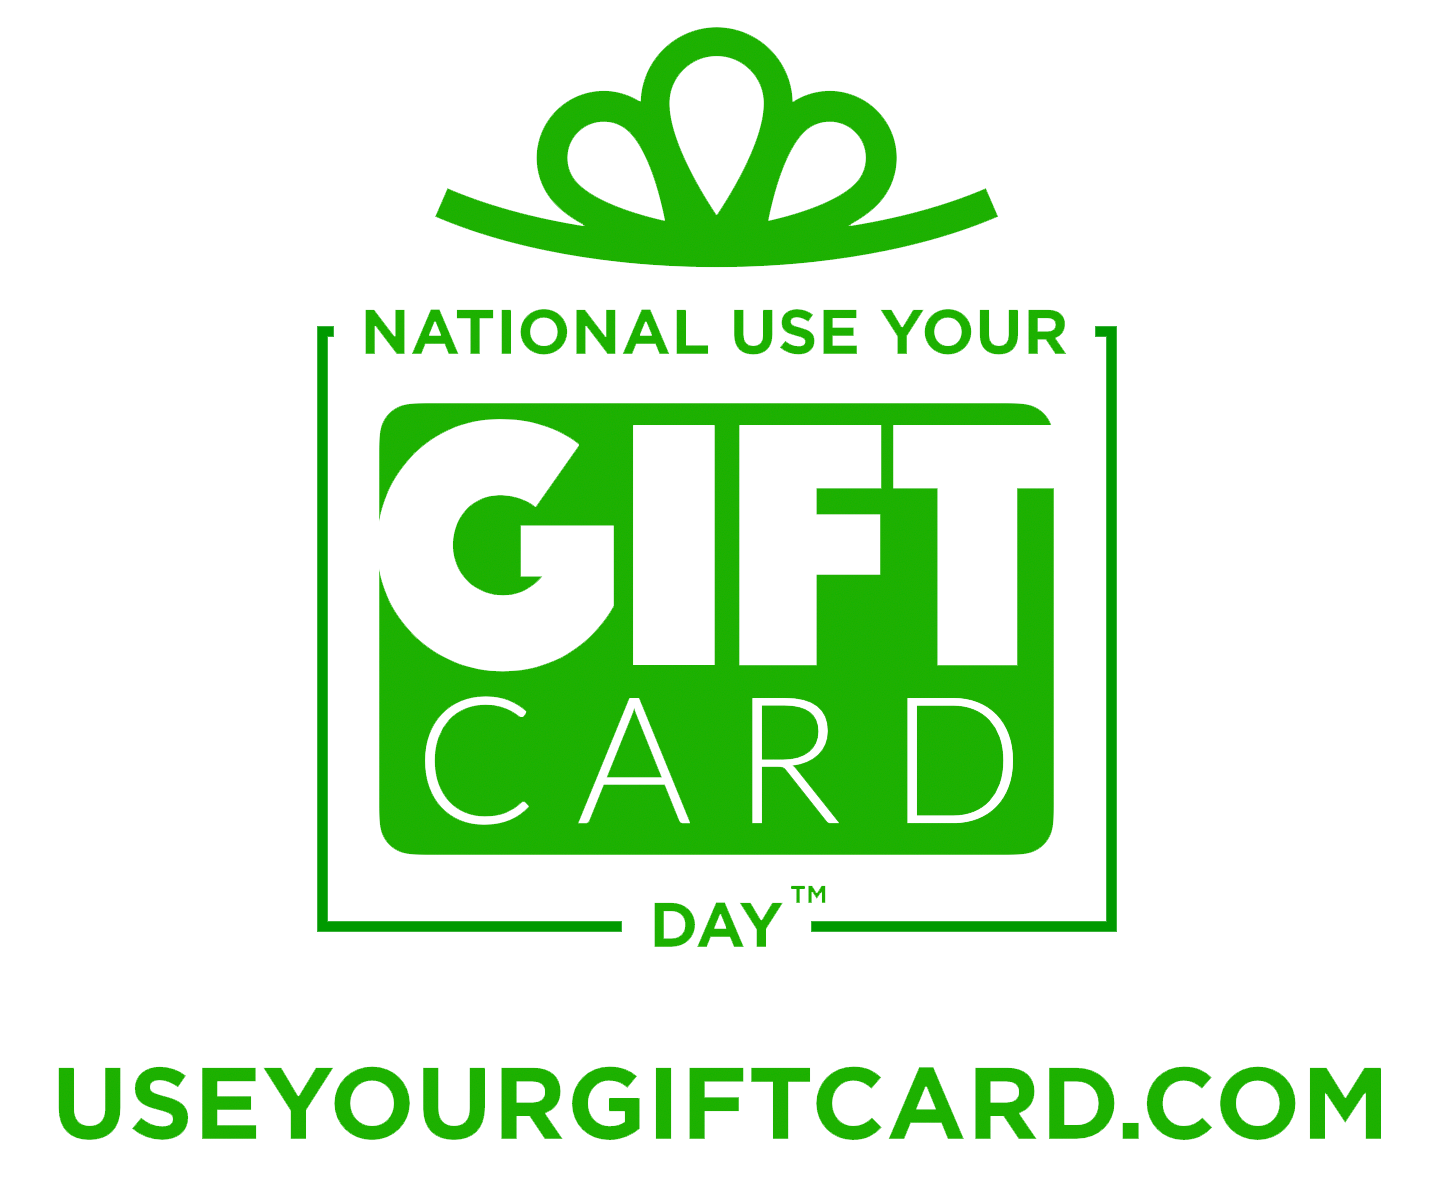 national-use-your-gift-card-logo